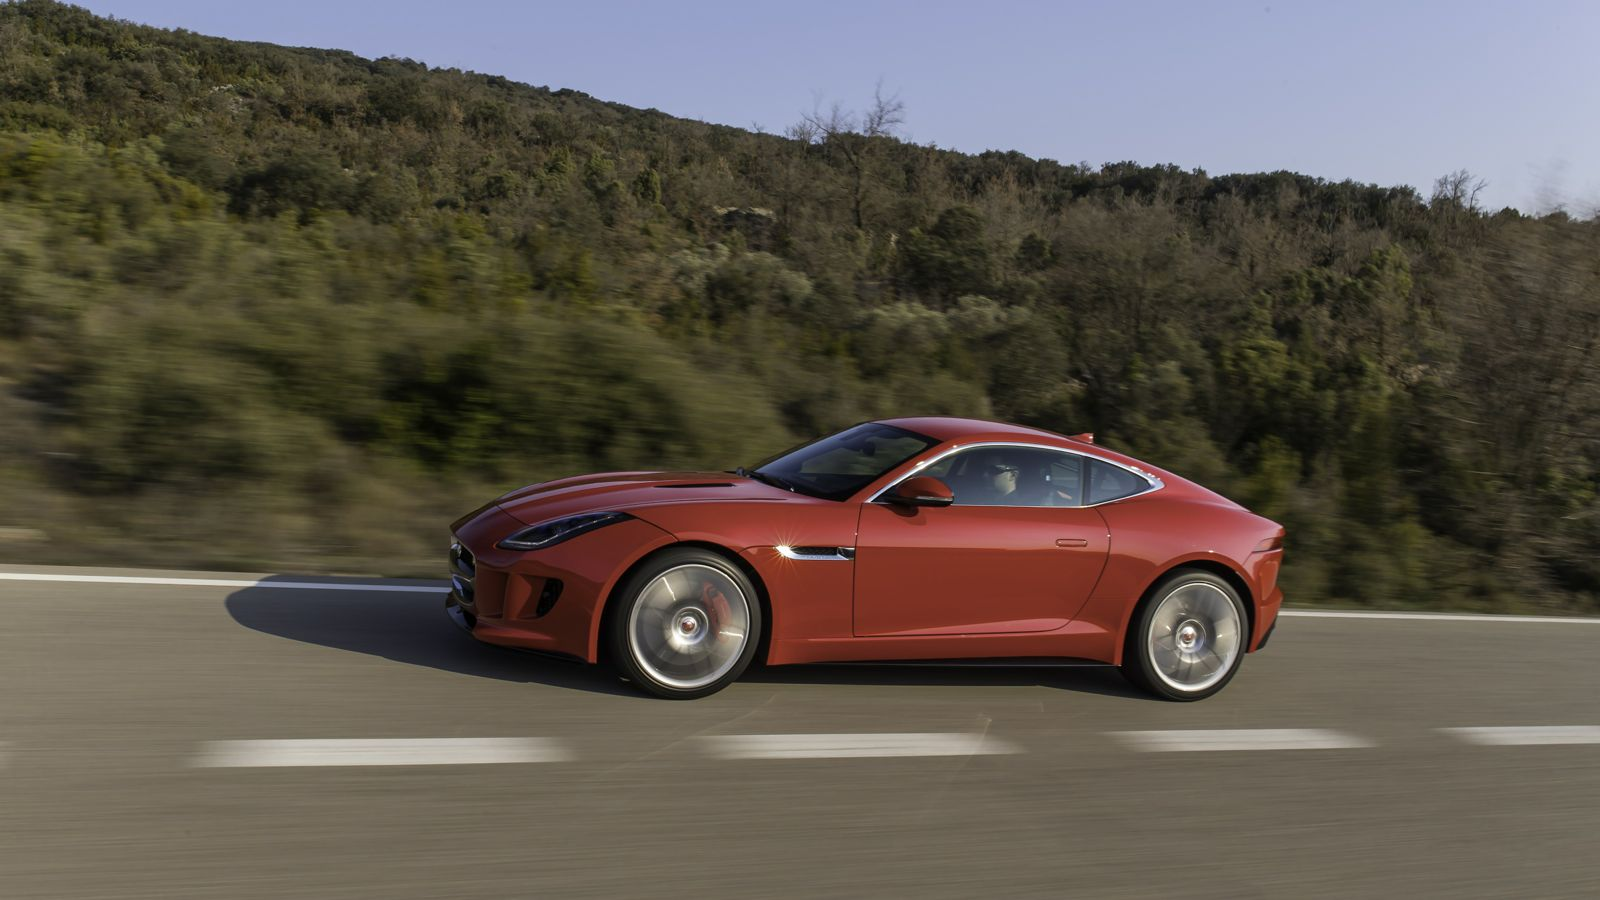 Jaguar Says Rear Wheel Drive For Sports Cars Is Better Than All Wheel Drive